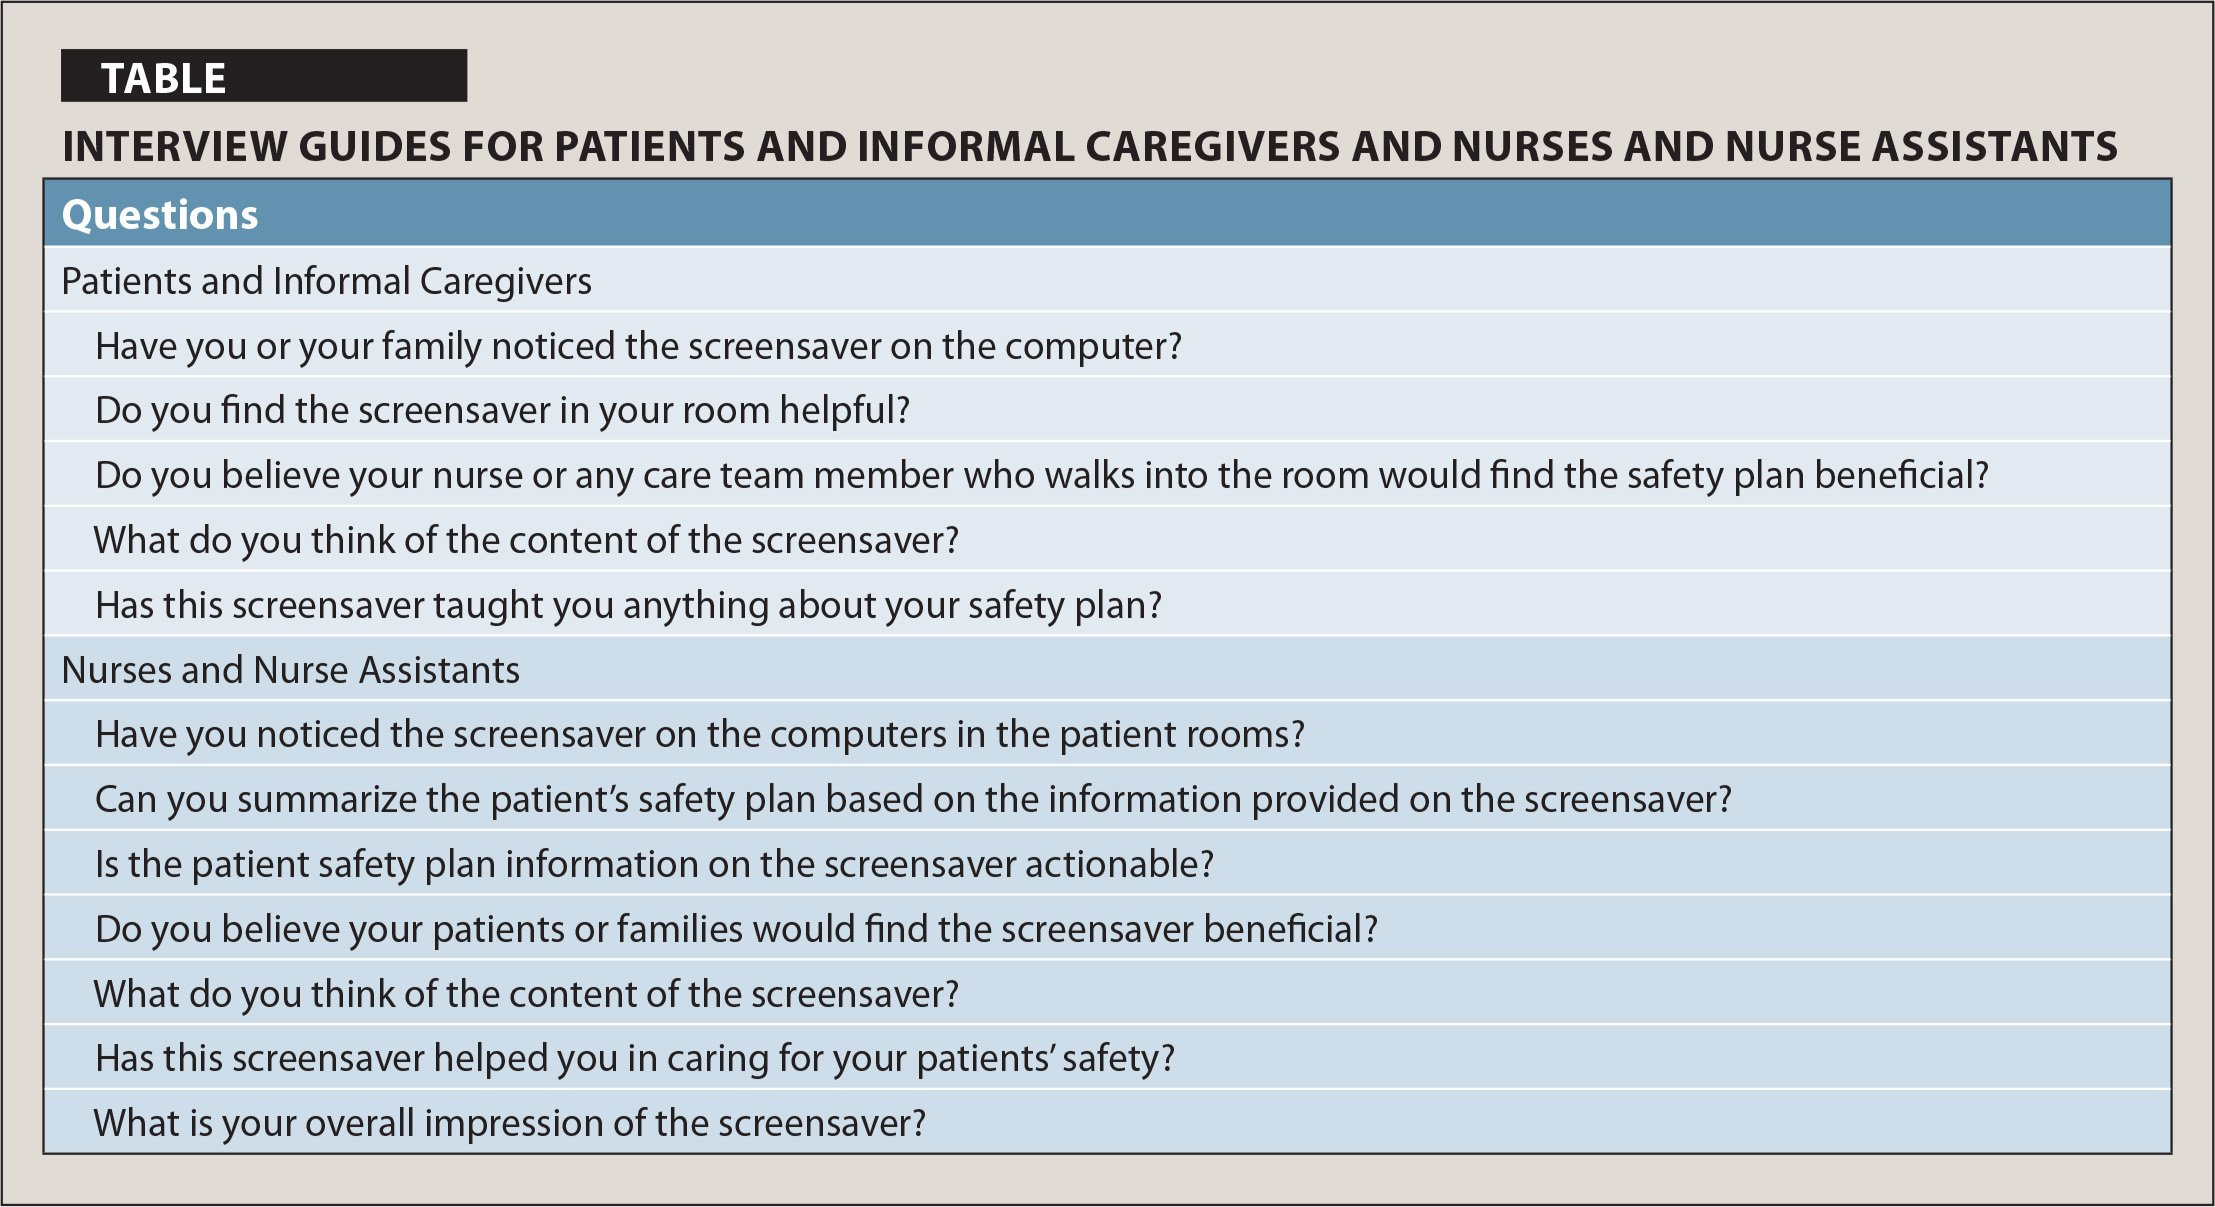 Interview Guides for Patients and Informal Caregivers and Nurses and Nurse Assistants